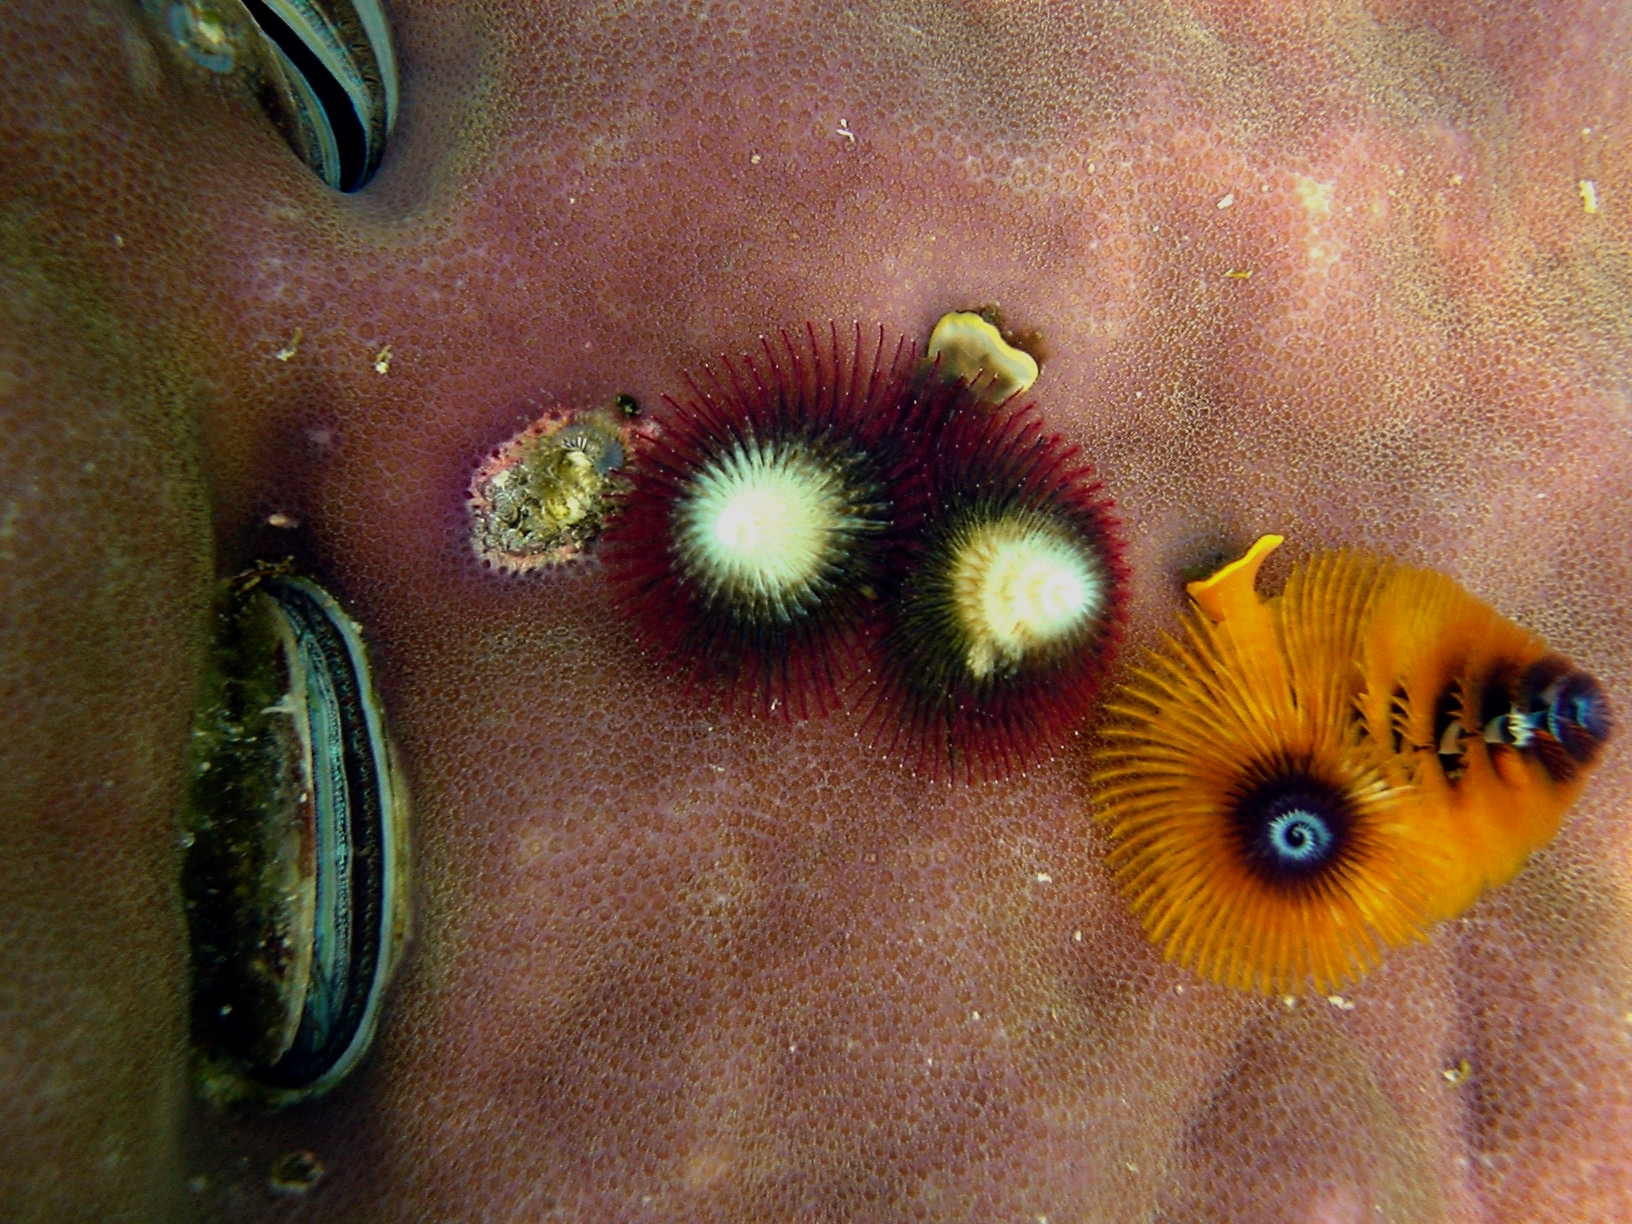 Image of Christmas tree worm